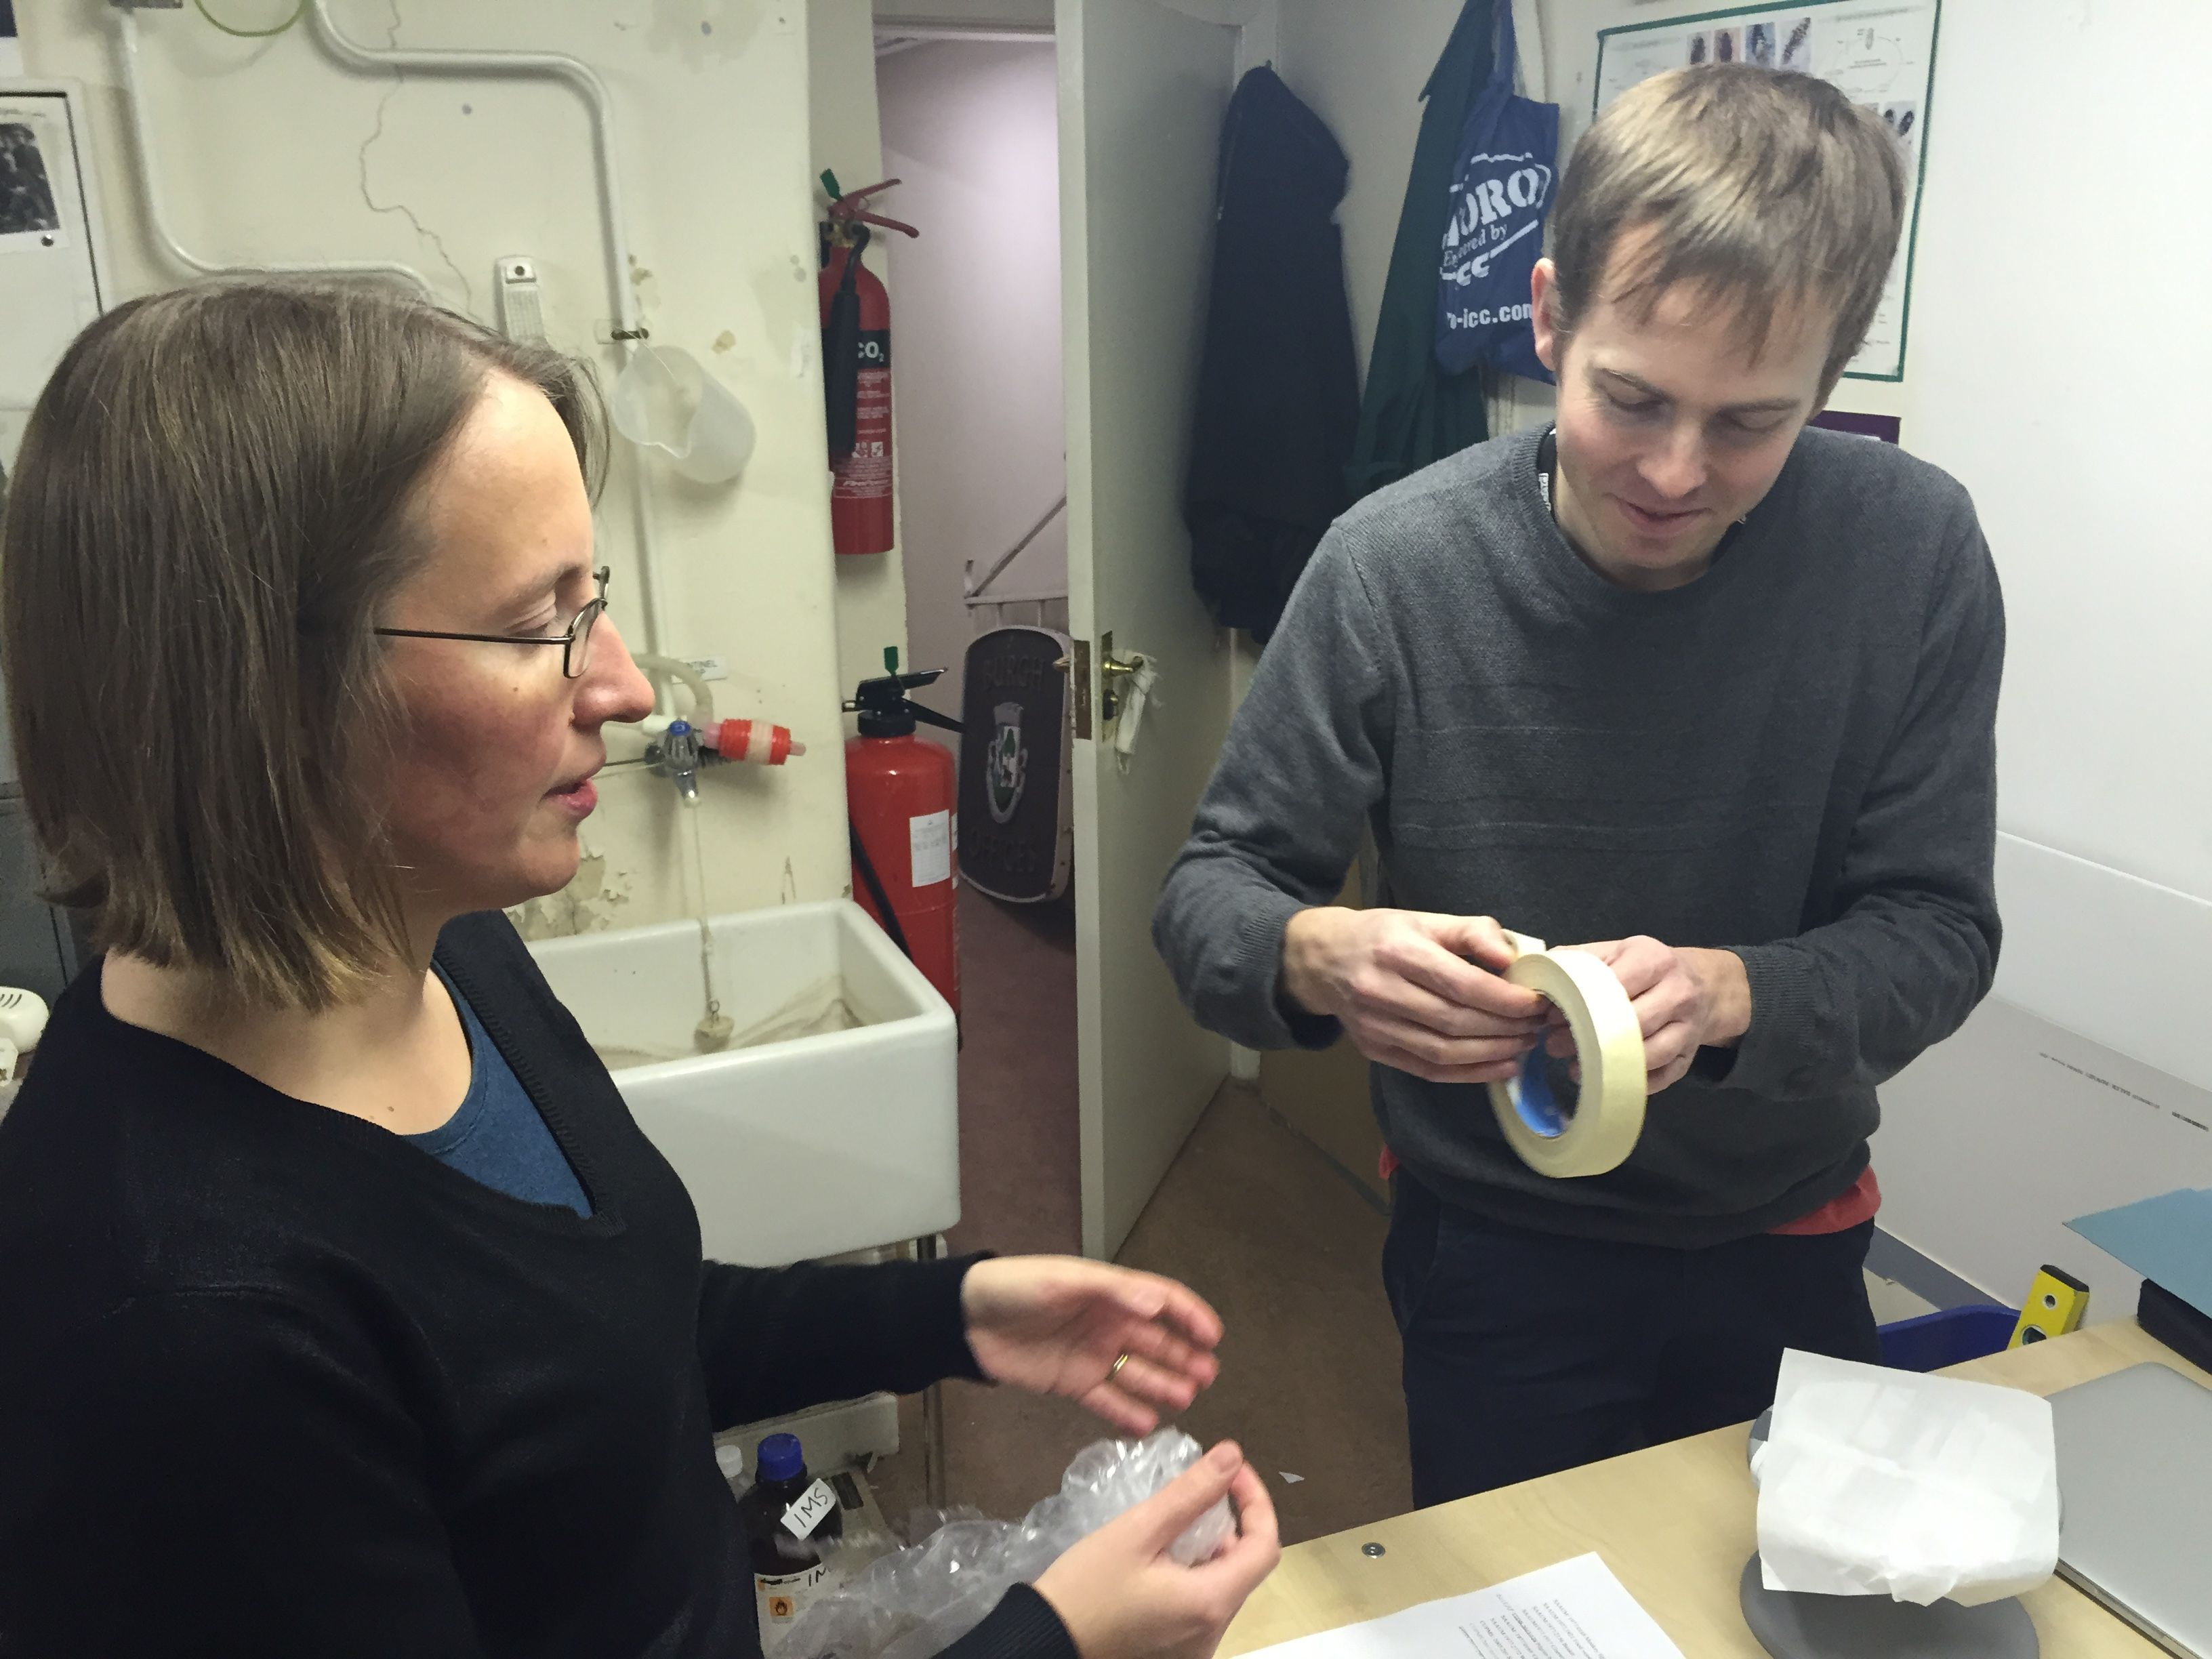 Jane (curator) assists Rob